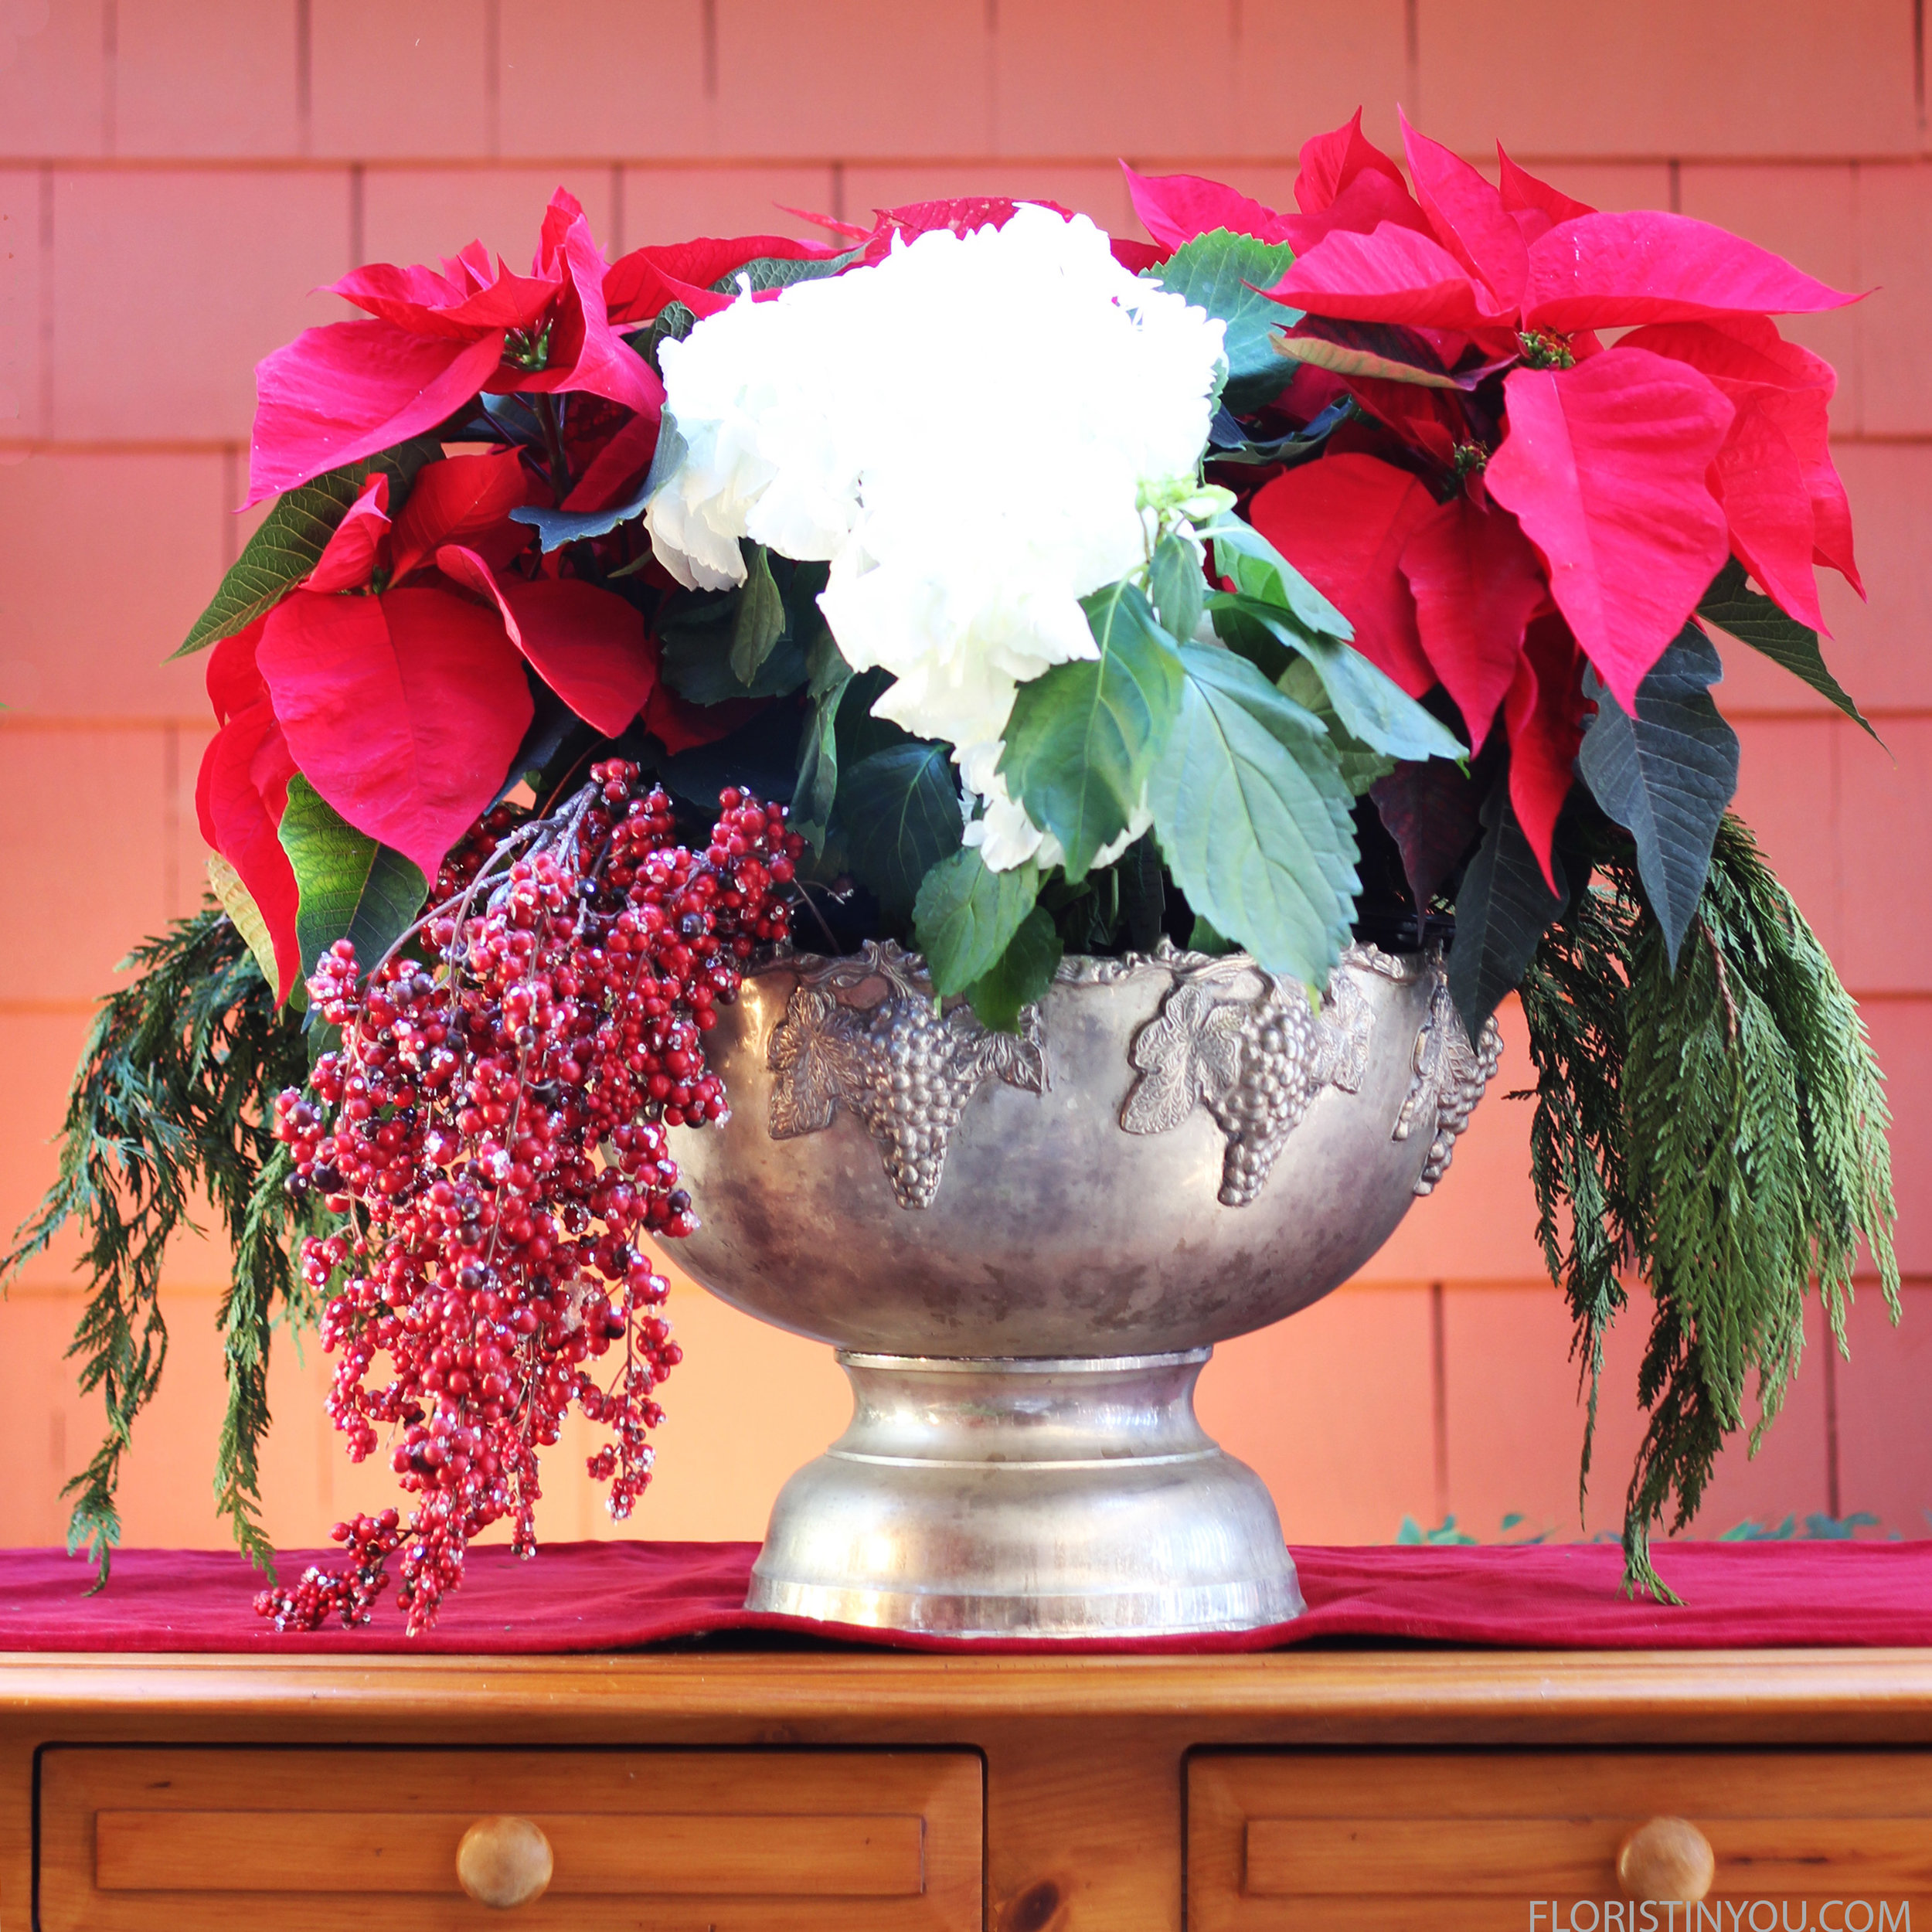 Put faux berries in on a 45 degree angle to the left of the Hydrangea.